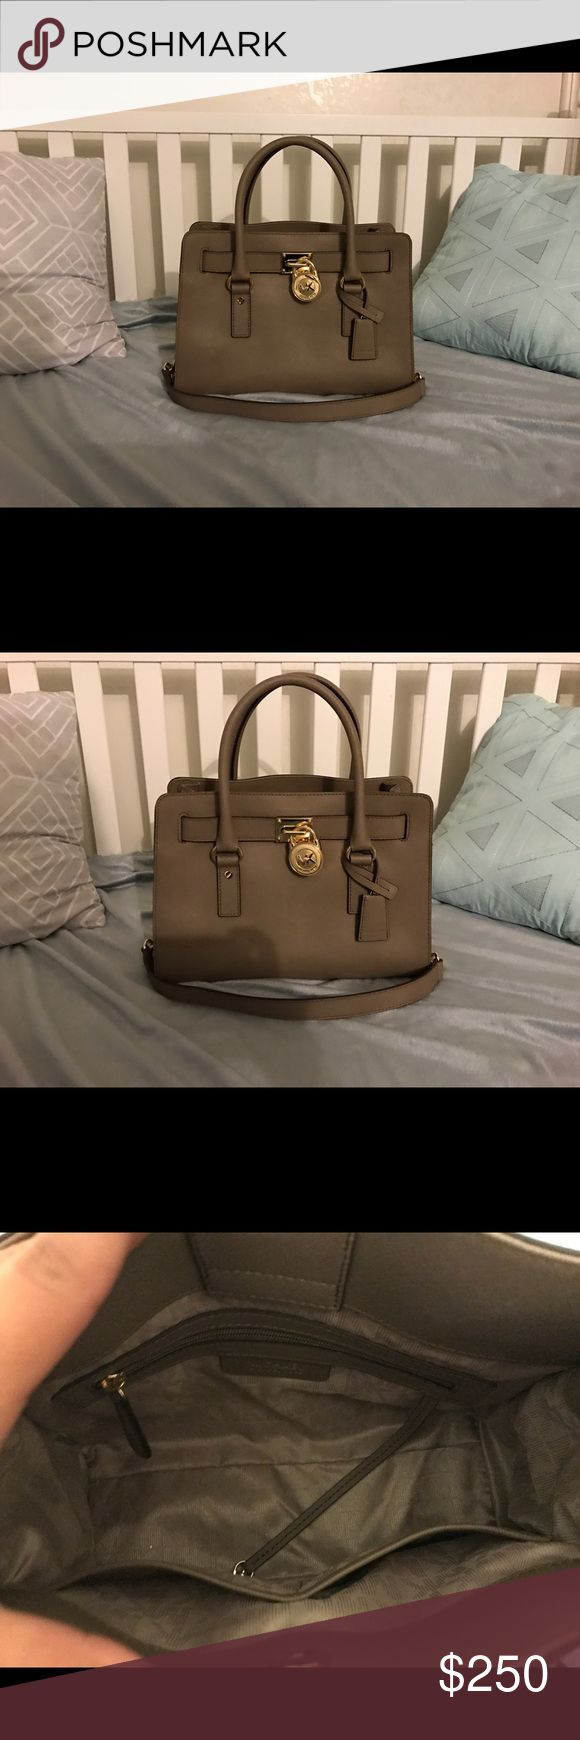 Authentic Michael kors purse Yes this is authentic comes with duster bag it is an amazing bag detailed with gold only worn once it is almost like new no flaws Michael Kors Bags Crossbody Bags